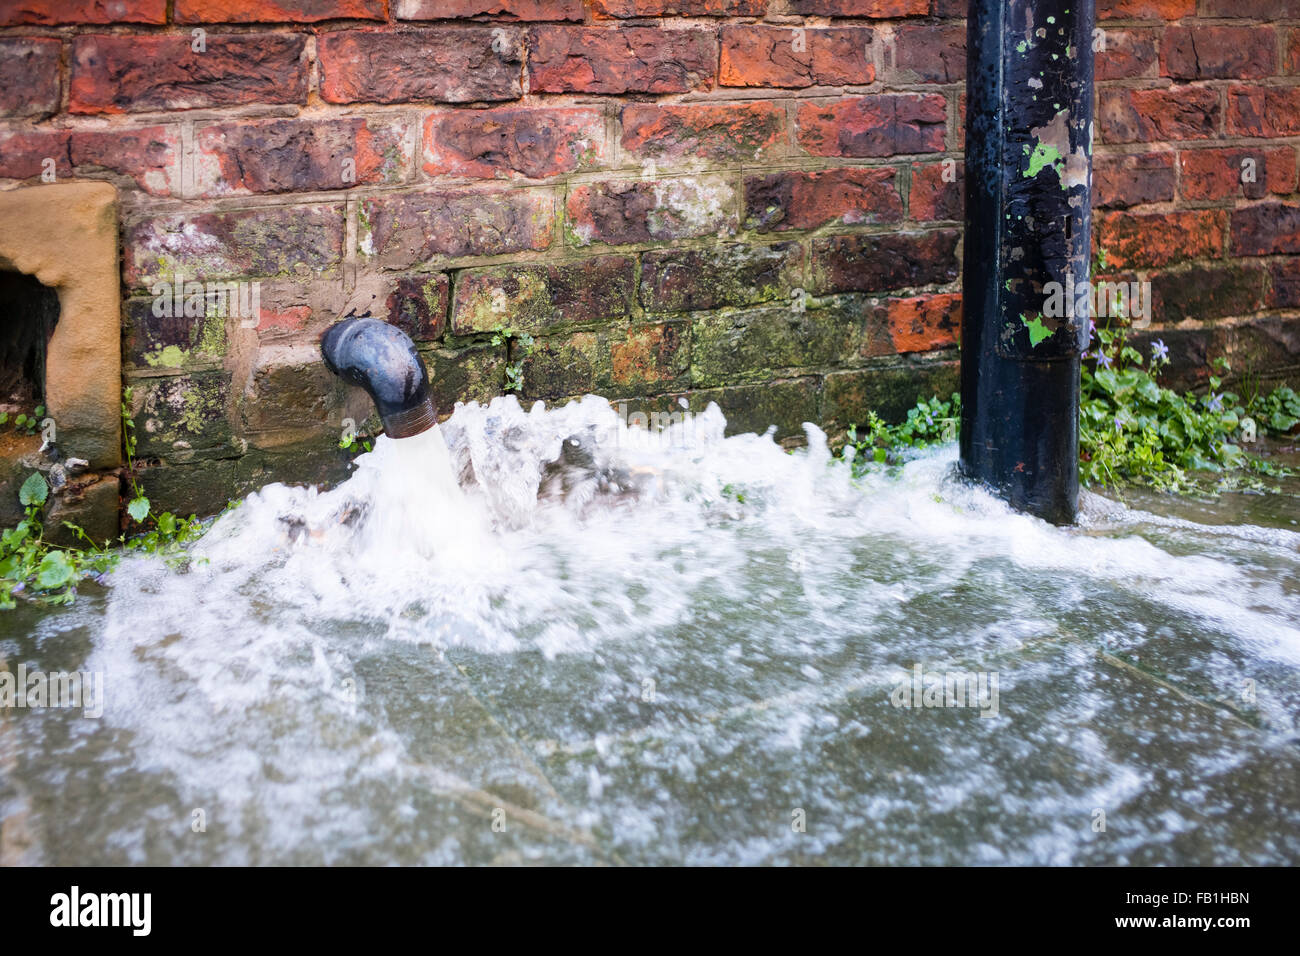 Floodwater from the River Ouse being pumped from a cellar in Peckitt Street, Christmas 2015, York, Yorkshire, England - Stock Image